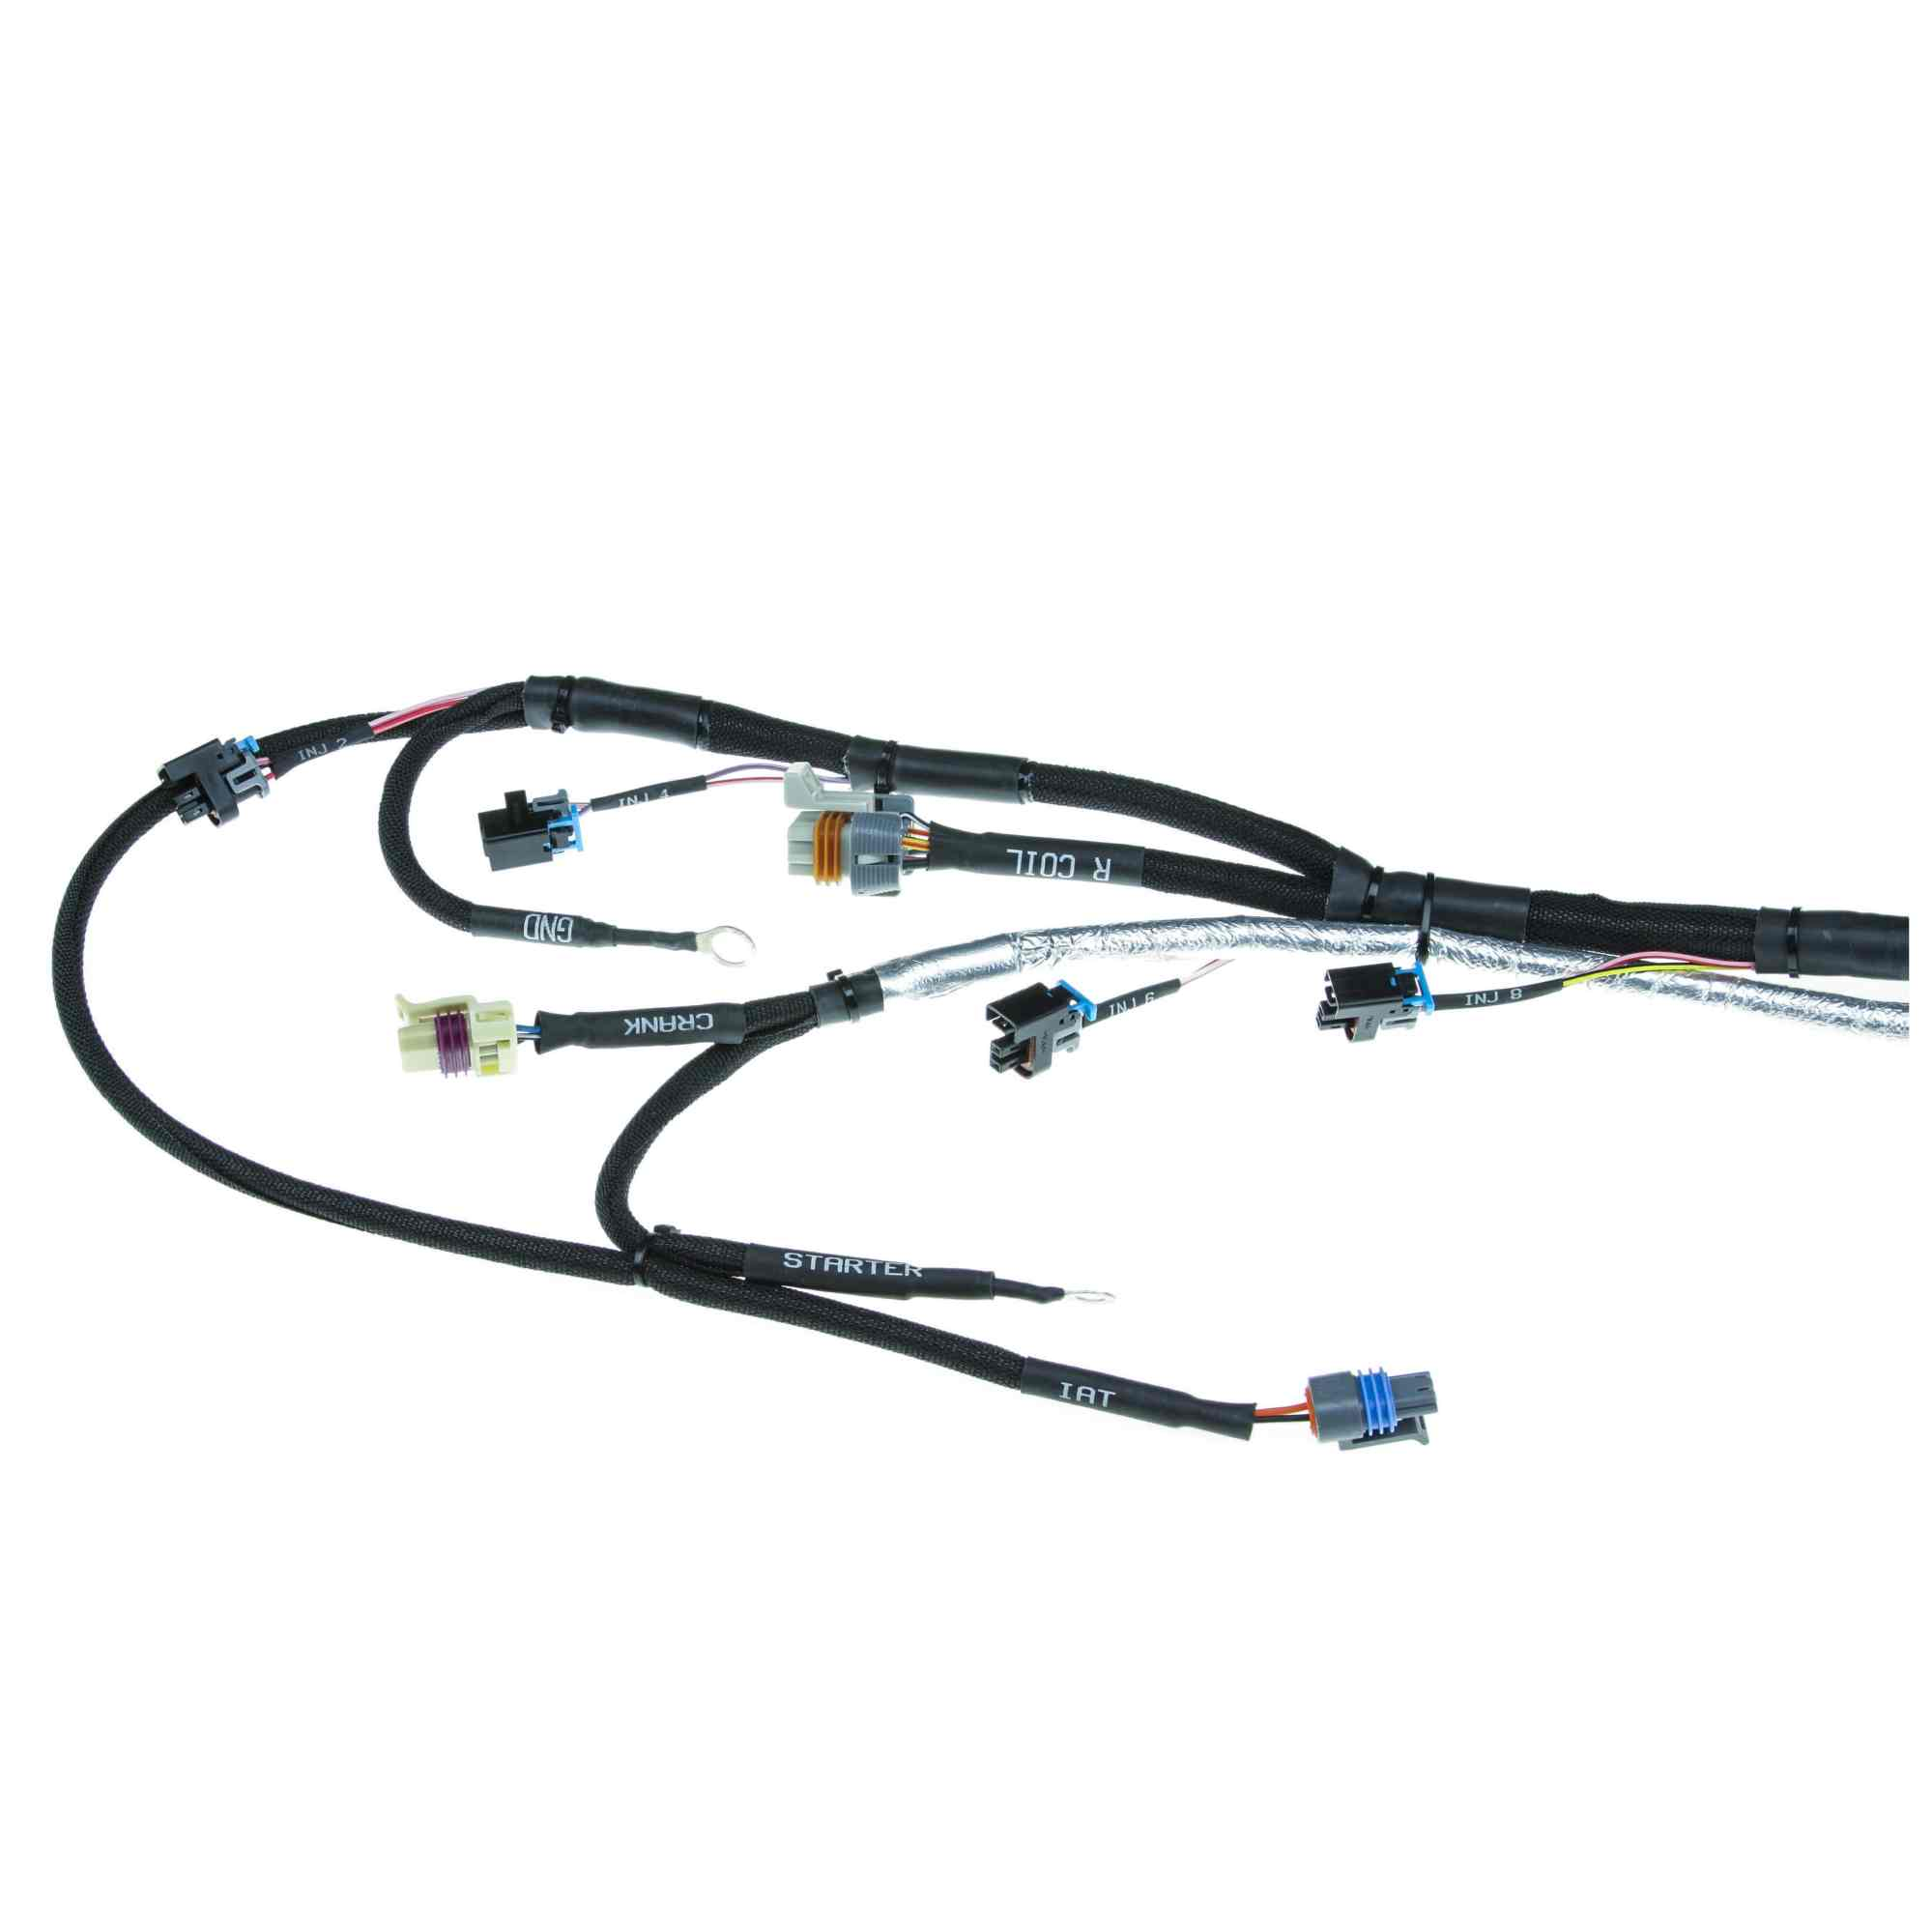 hight resolution of obd to obd conversion harness wiring diagram images wiring harness obd0 to obd1 conversion harness alpine